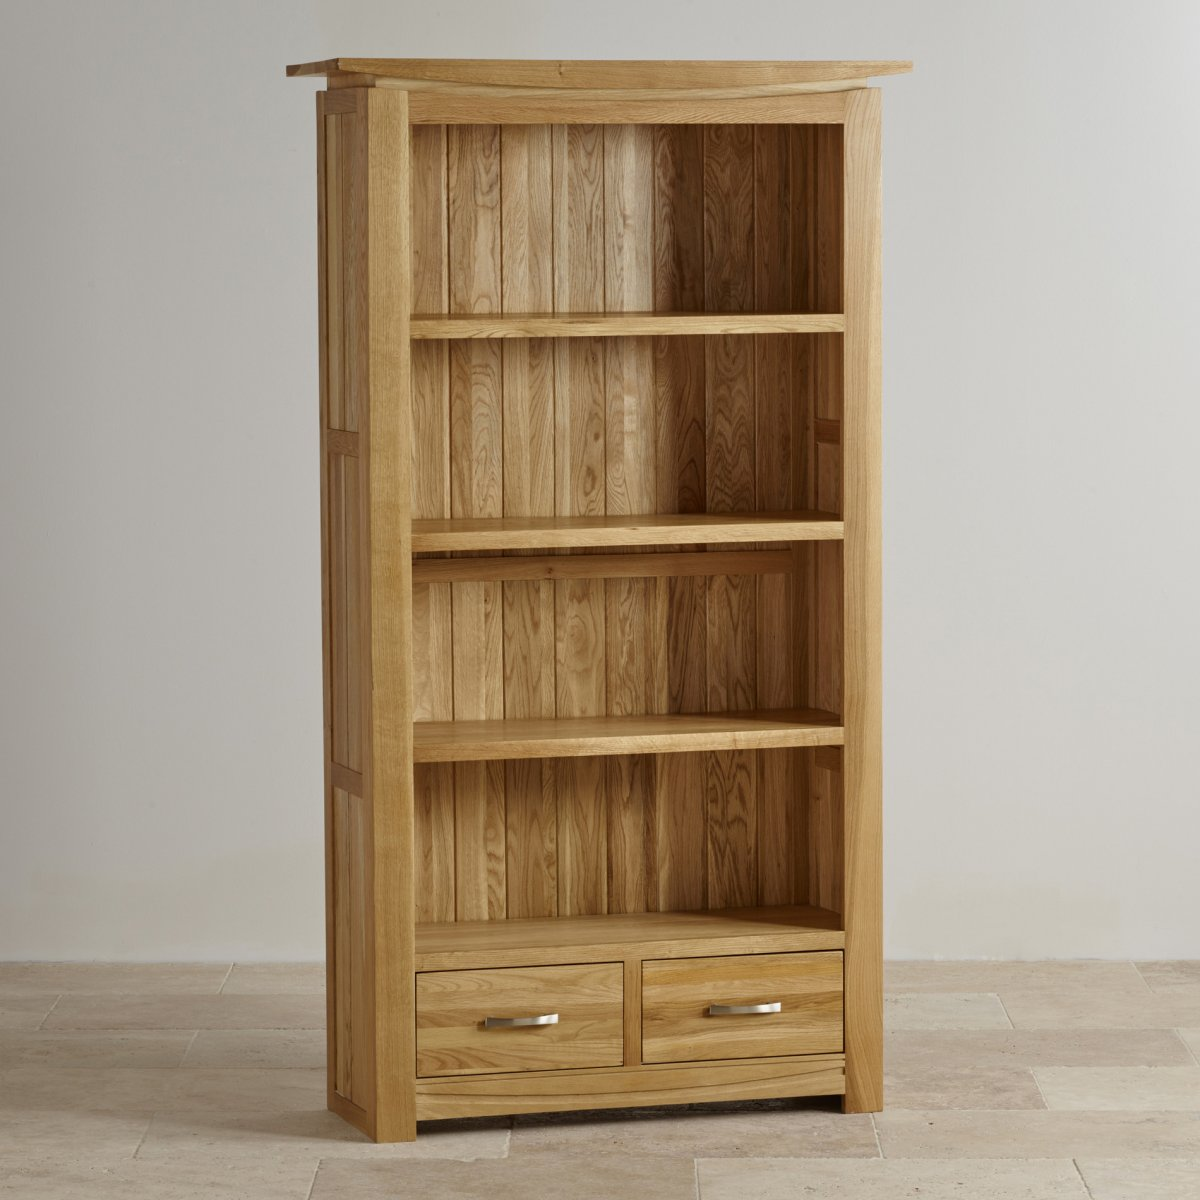 Shop with the excellent Oak Furniture Land promo codes & offers at a discount price.